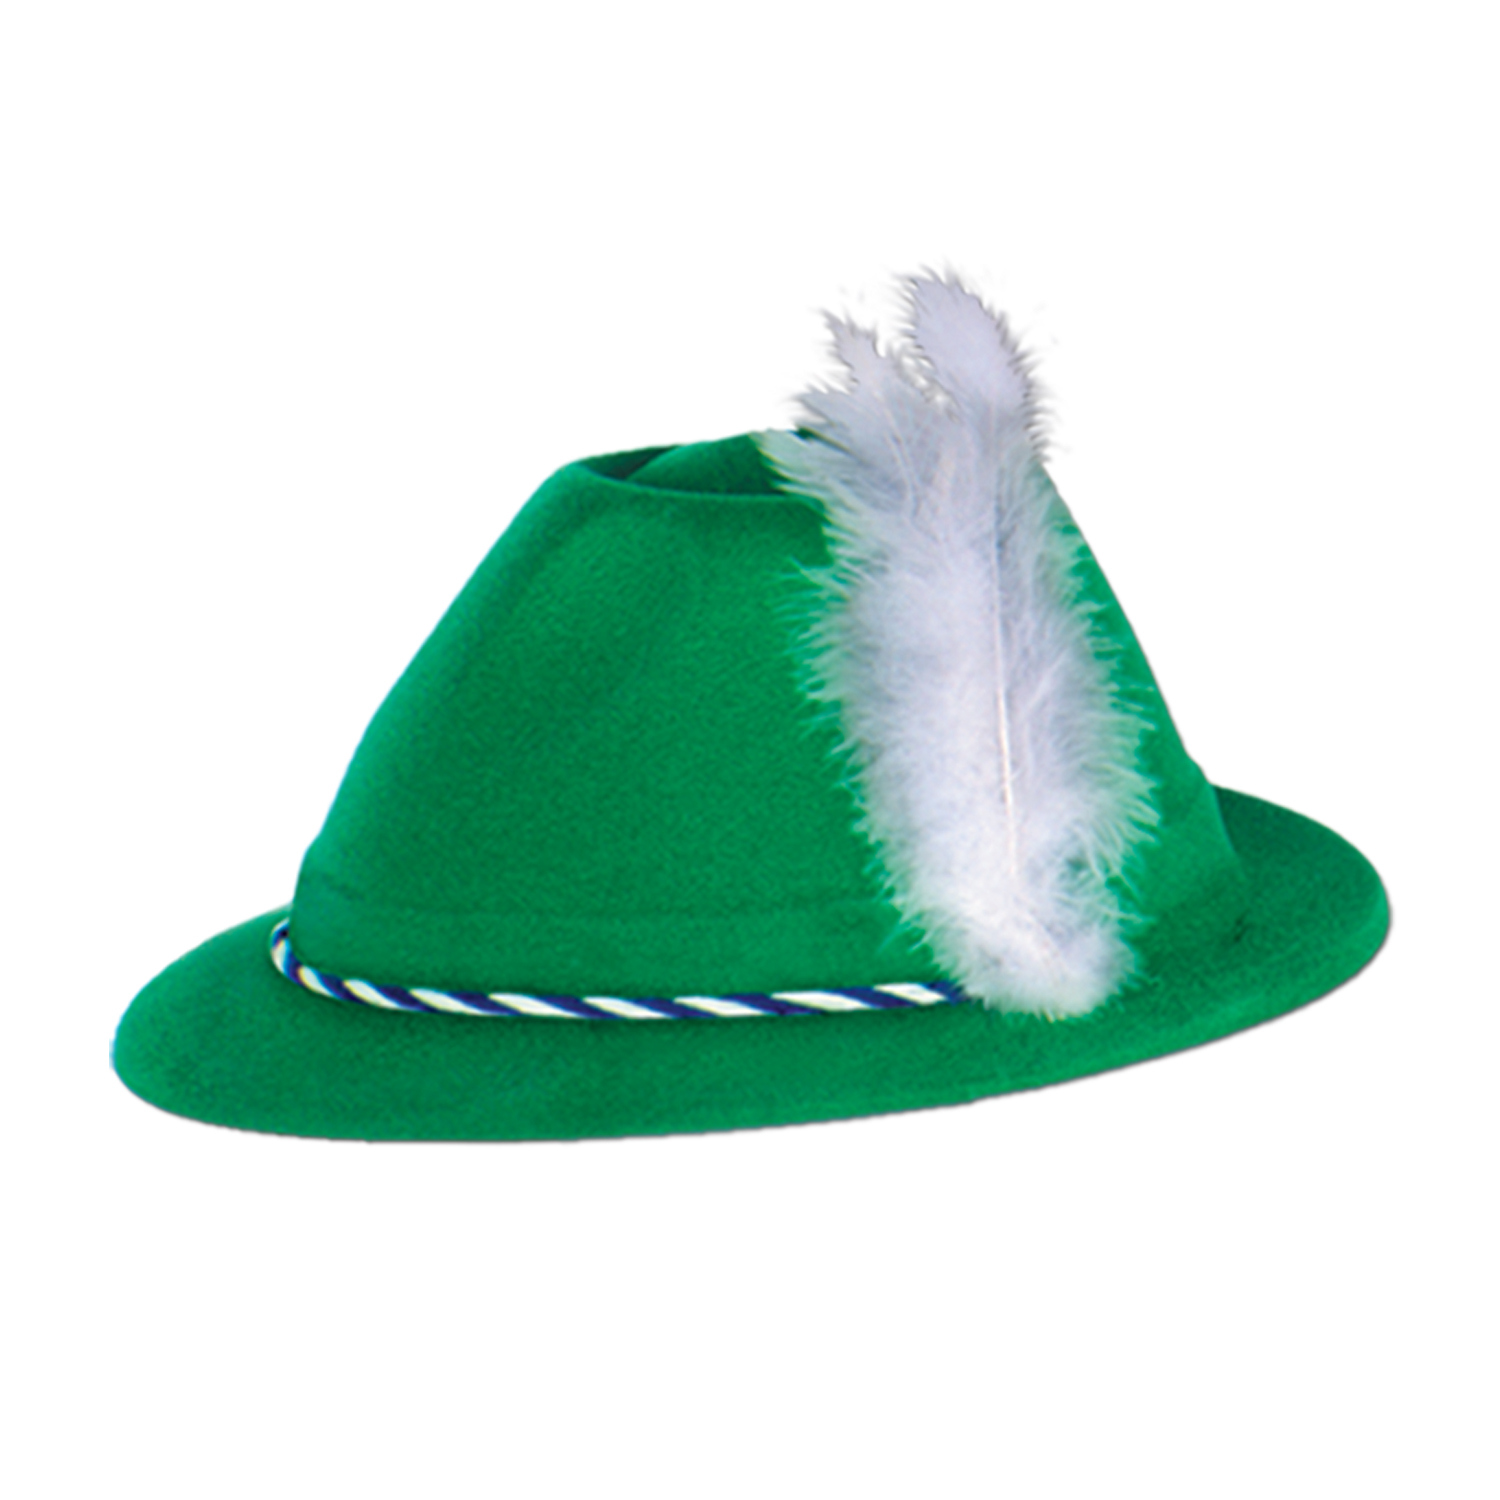 Green Velour Tyrolean Hat (Pack of 24) Green Velour Hat, Green hat with feather, Oktoberfest accesssory, St. Patricks Day favor, German party supplies, Inexpensive party hat, Wholesale party goods, Cheap velour hat